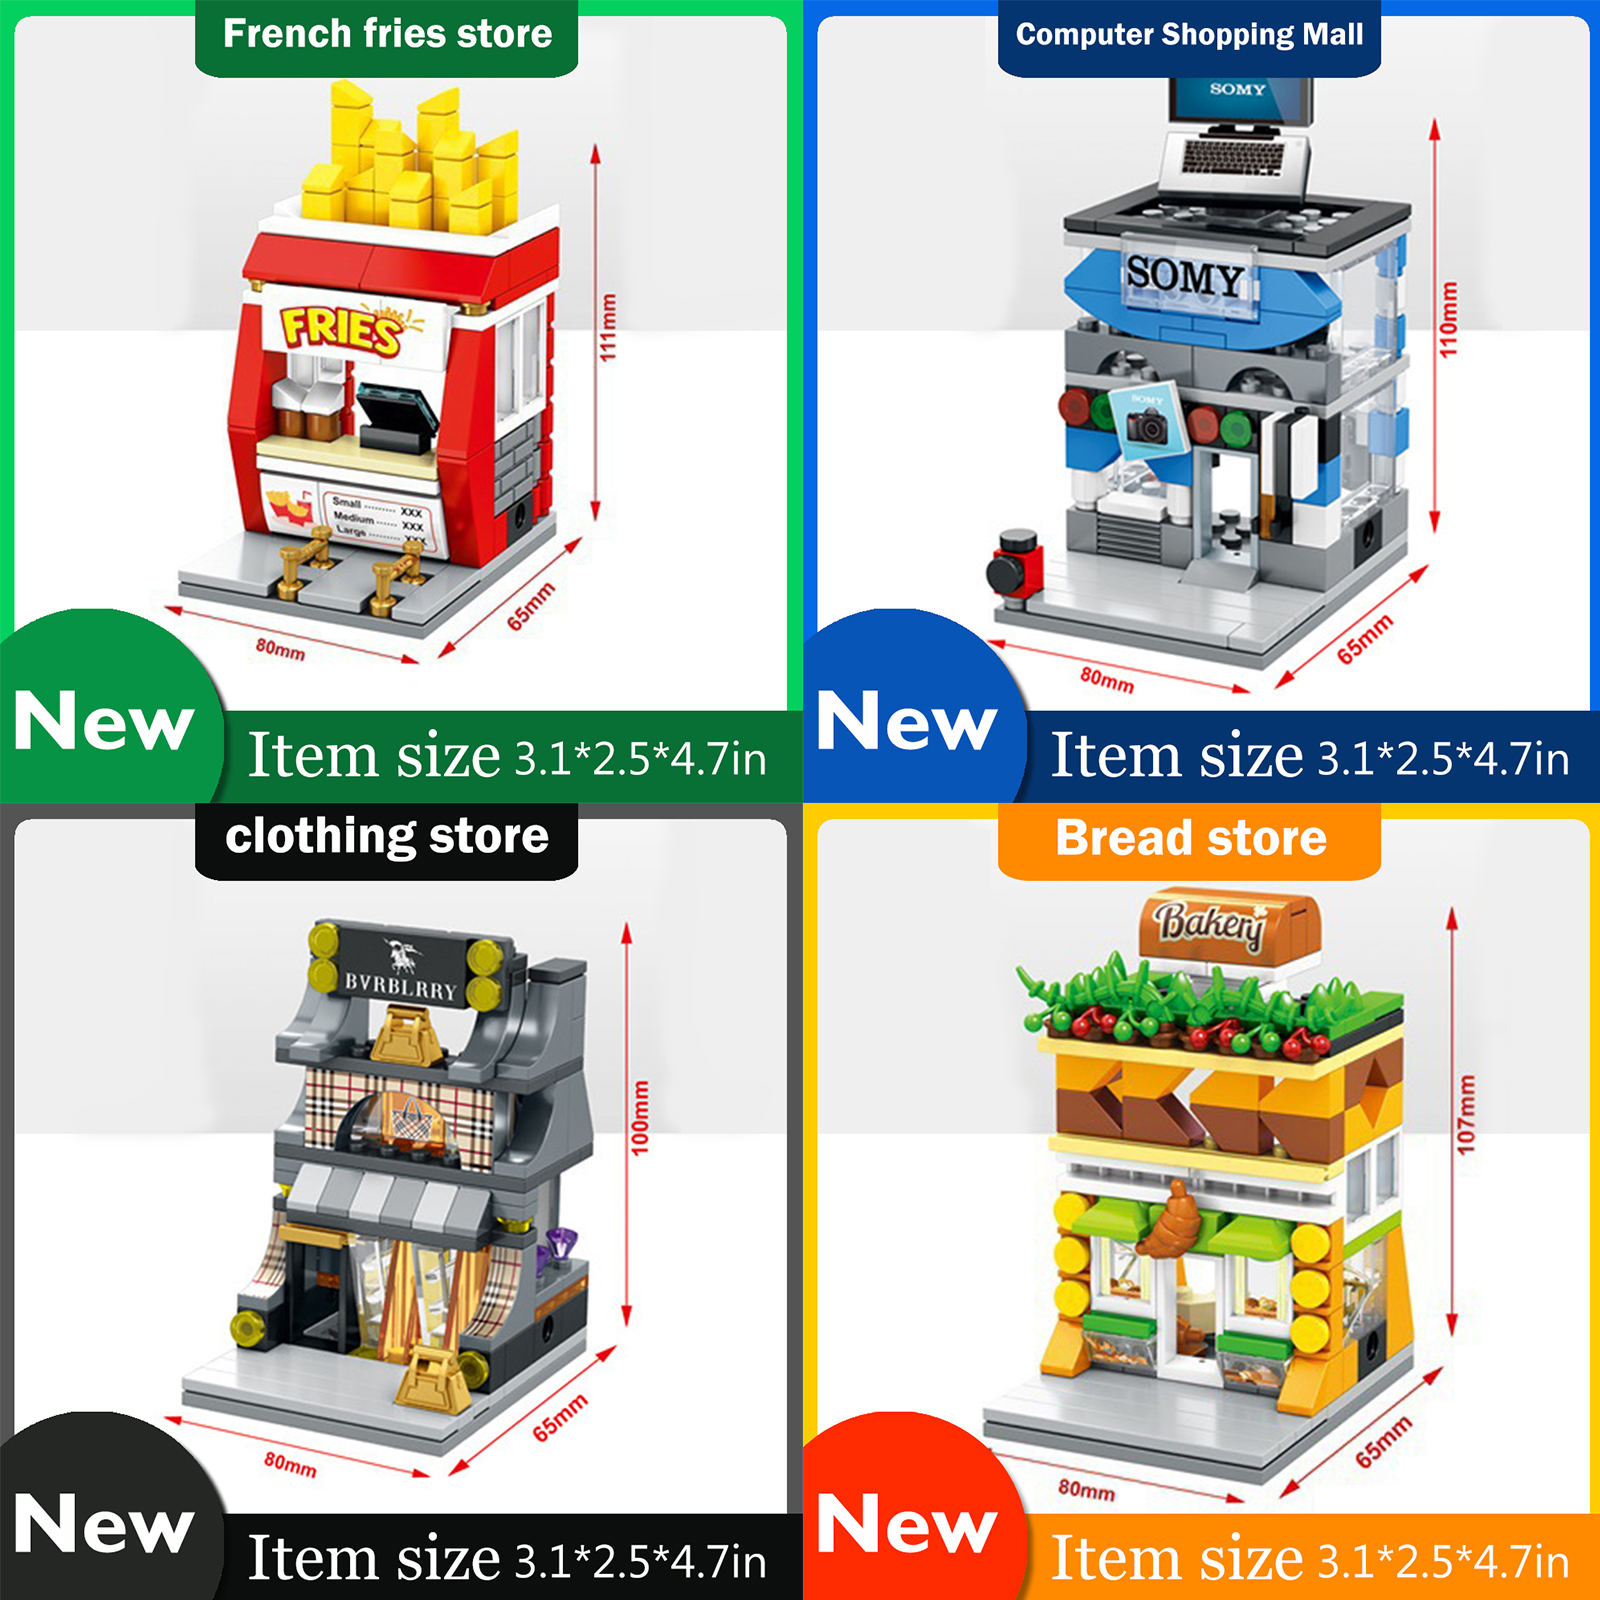 цены 4PCS/SET SD6062-6065 Sembo MIni Street View Building Block City Toys french fries clothing bread store computer shopping mall